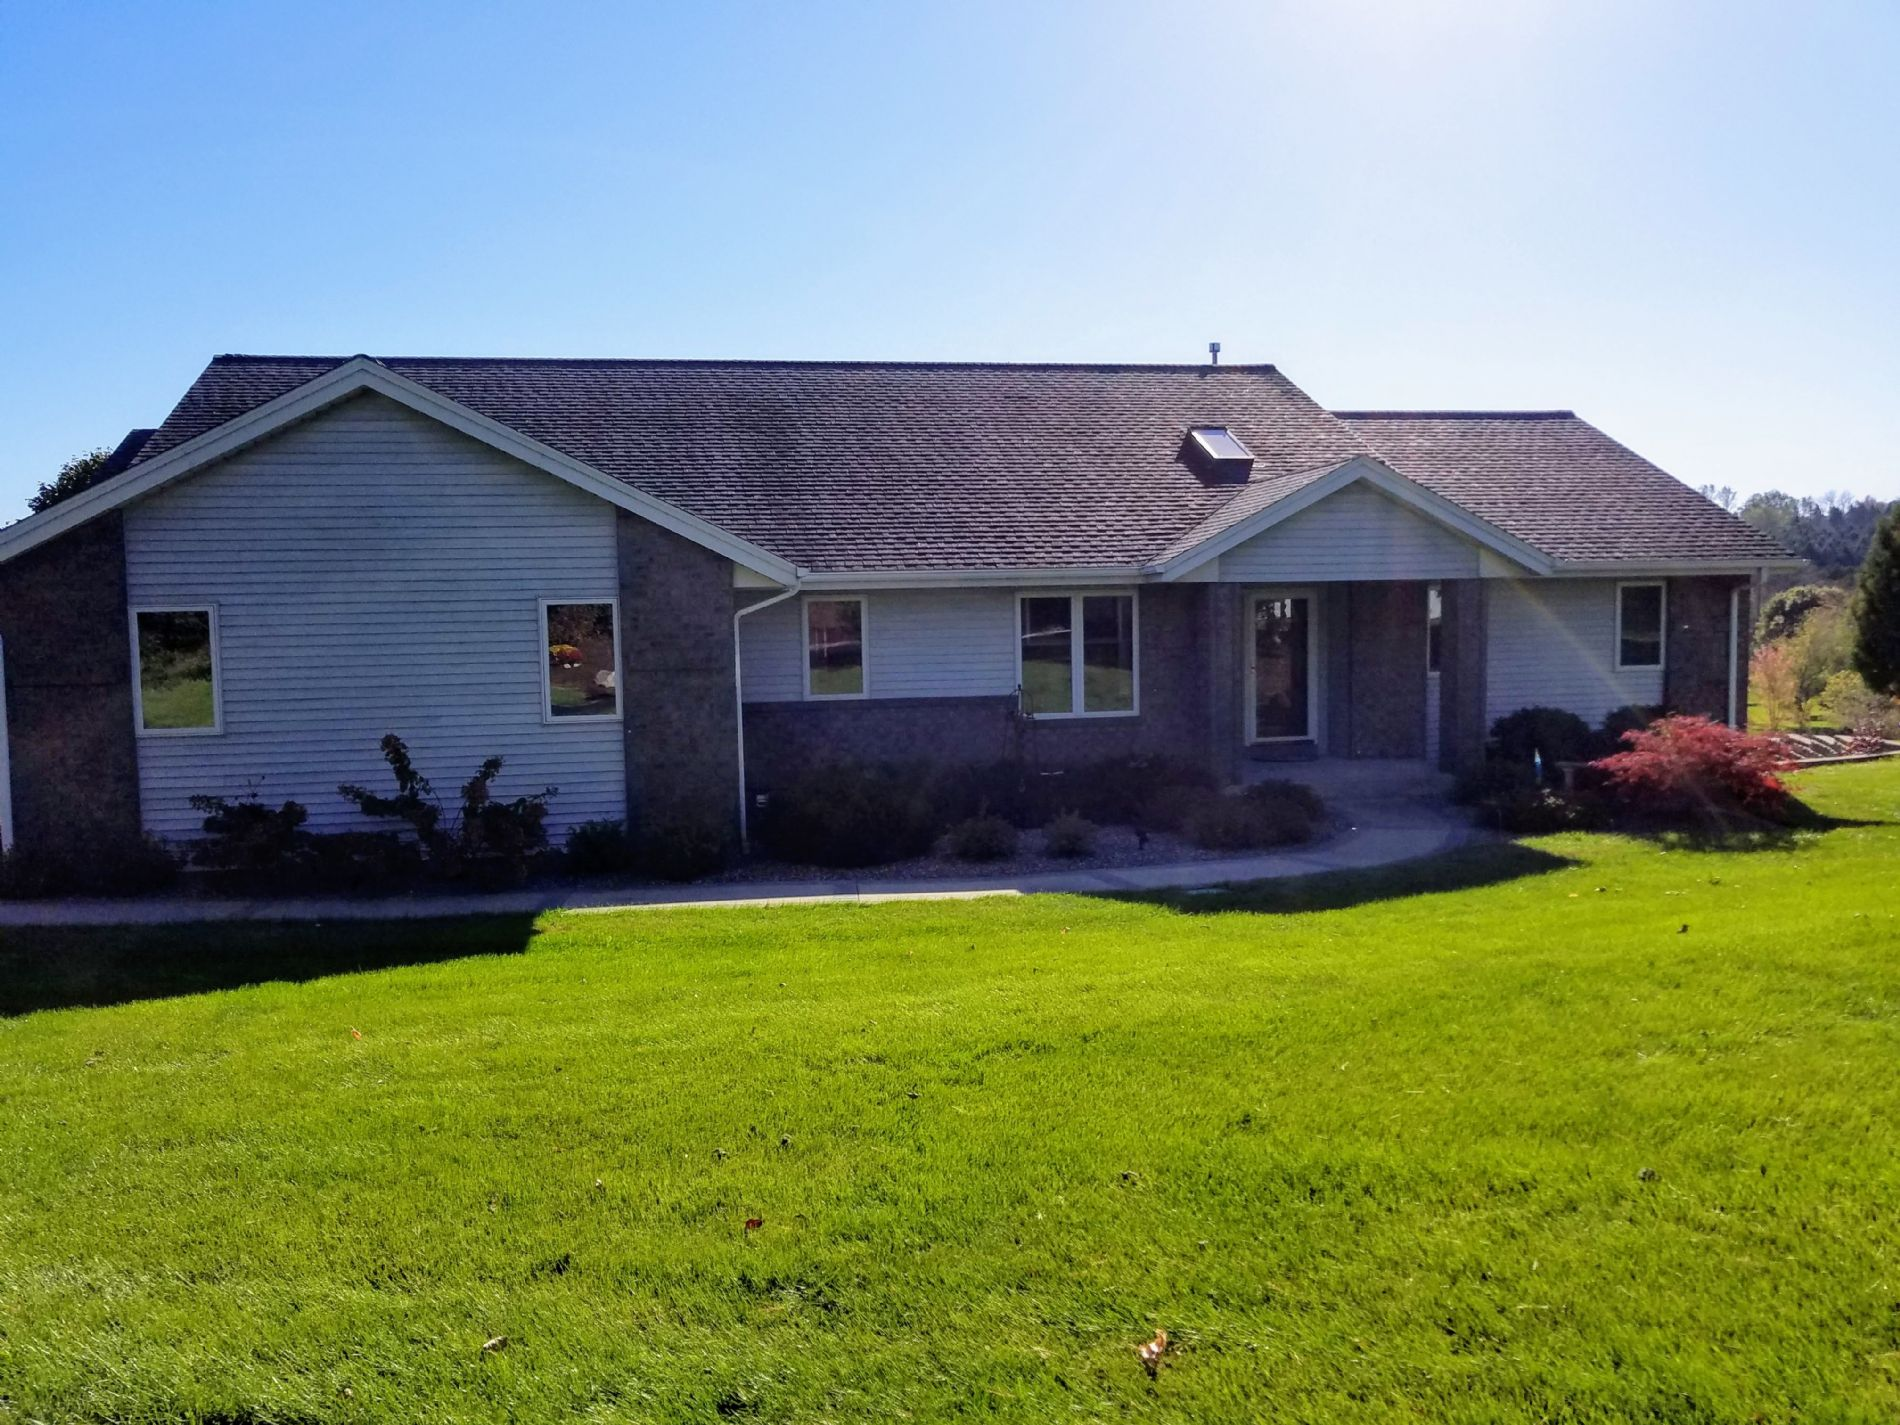 Sheboygan By Owner For Sale By Owner Homes Property Real Estate